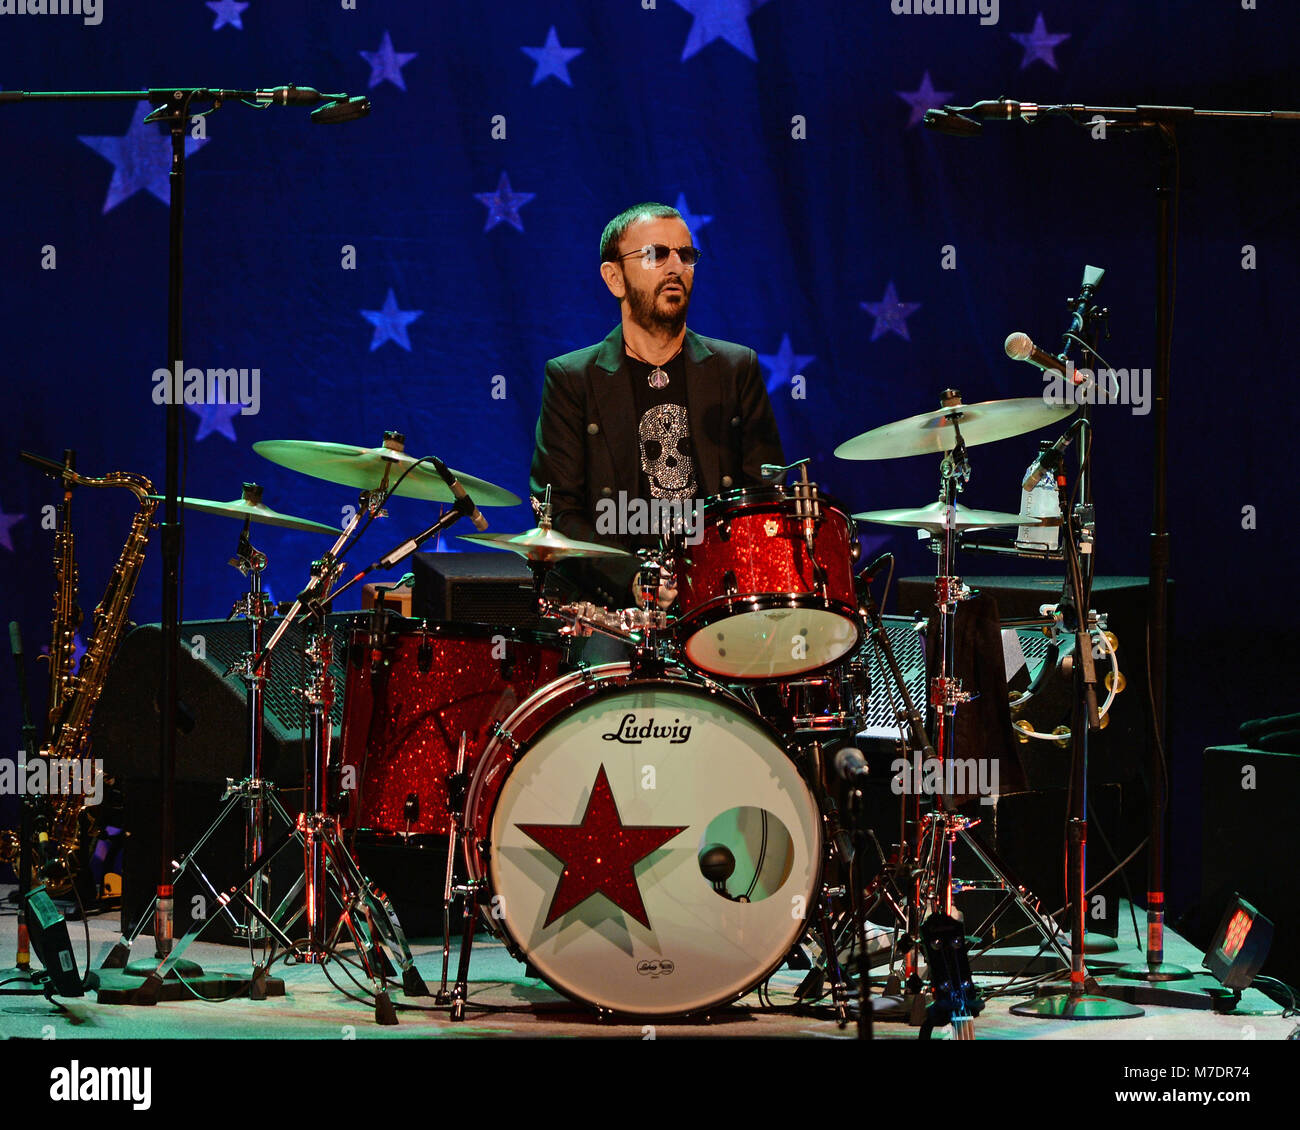 LAUDERDALE FL - OCTOBER 21: Ringo Starr performs at The Broward Center For The Performing Arts on October 21, 2014 - Stock Image